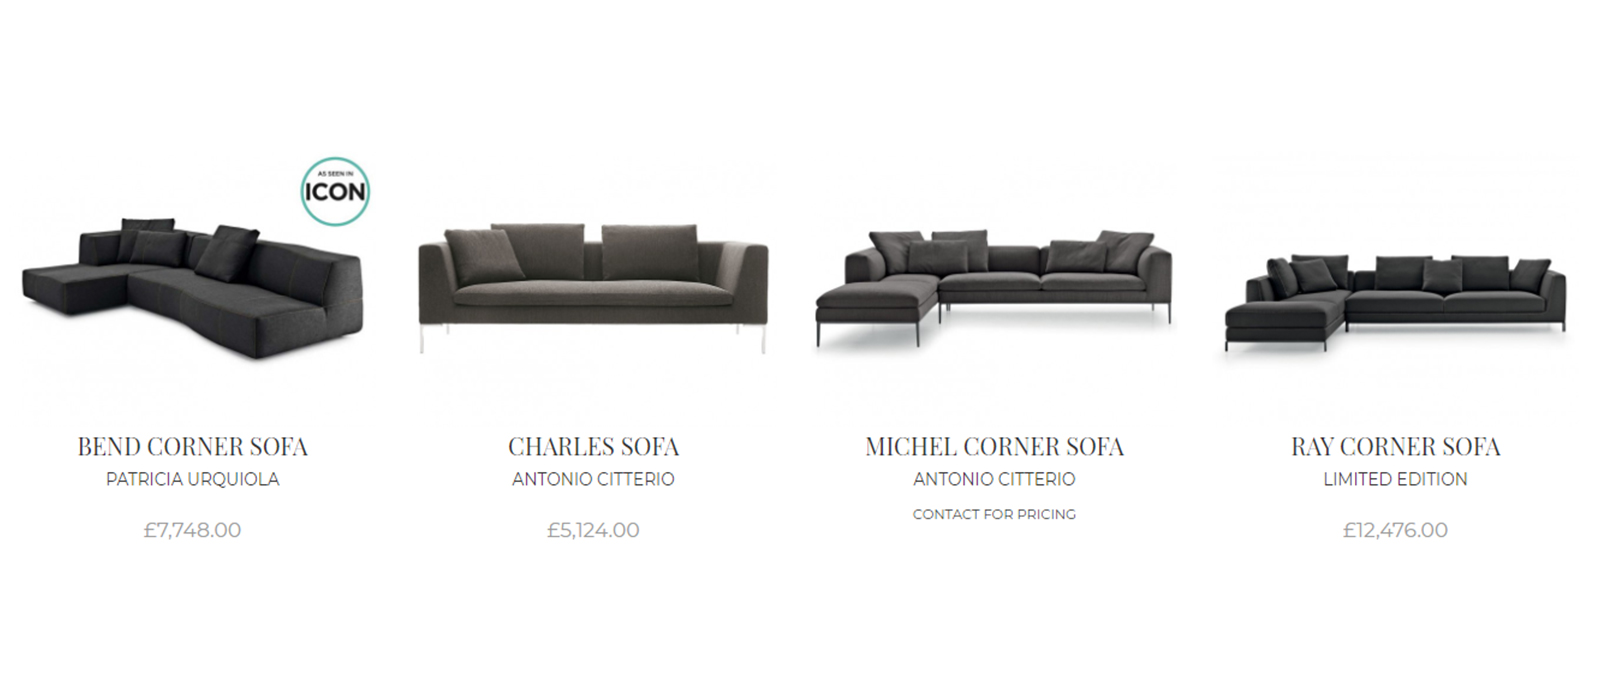 Including prices with the product image is again a retail presentation. Contract furniture is not presented with a price. These sofas, presented with their prices, are typical of a retail format which is likely to repel a professional specifier.